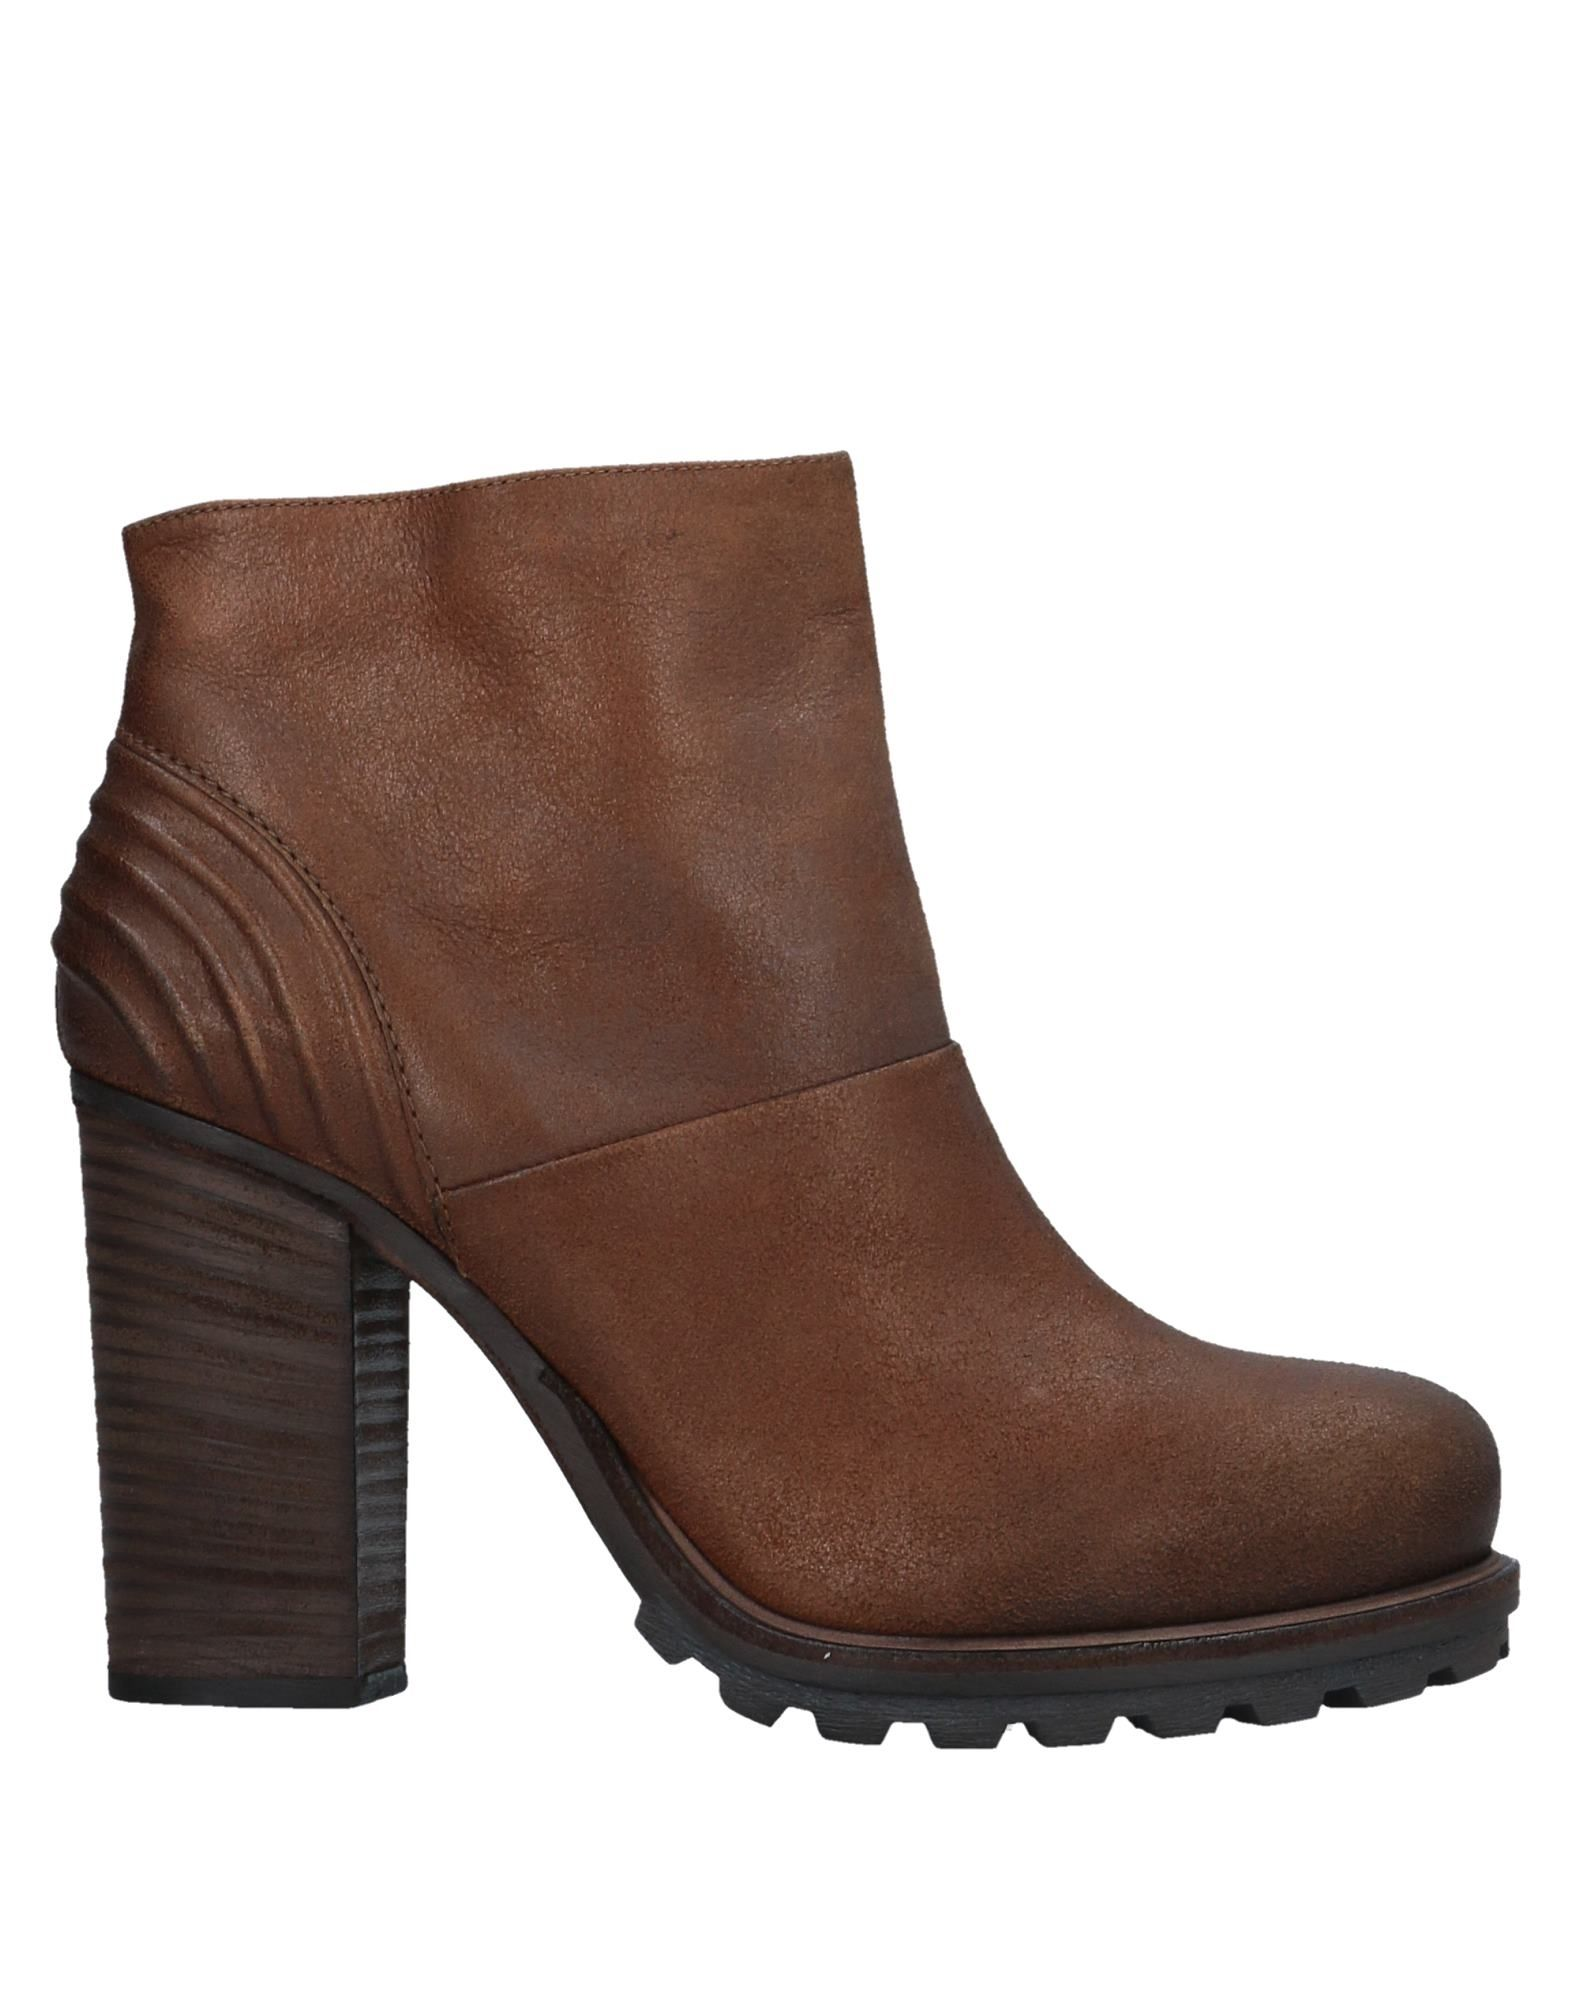 Vic Ankle Boot - Women Vic Ankle Boots online 11527627PG on  Australia - 11527627PG online 46d9e5